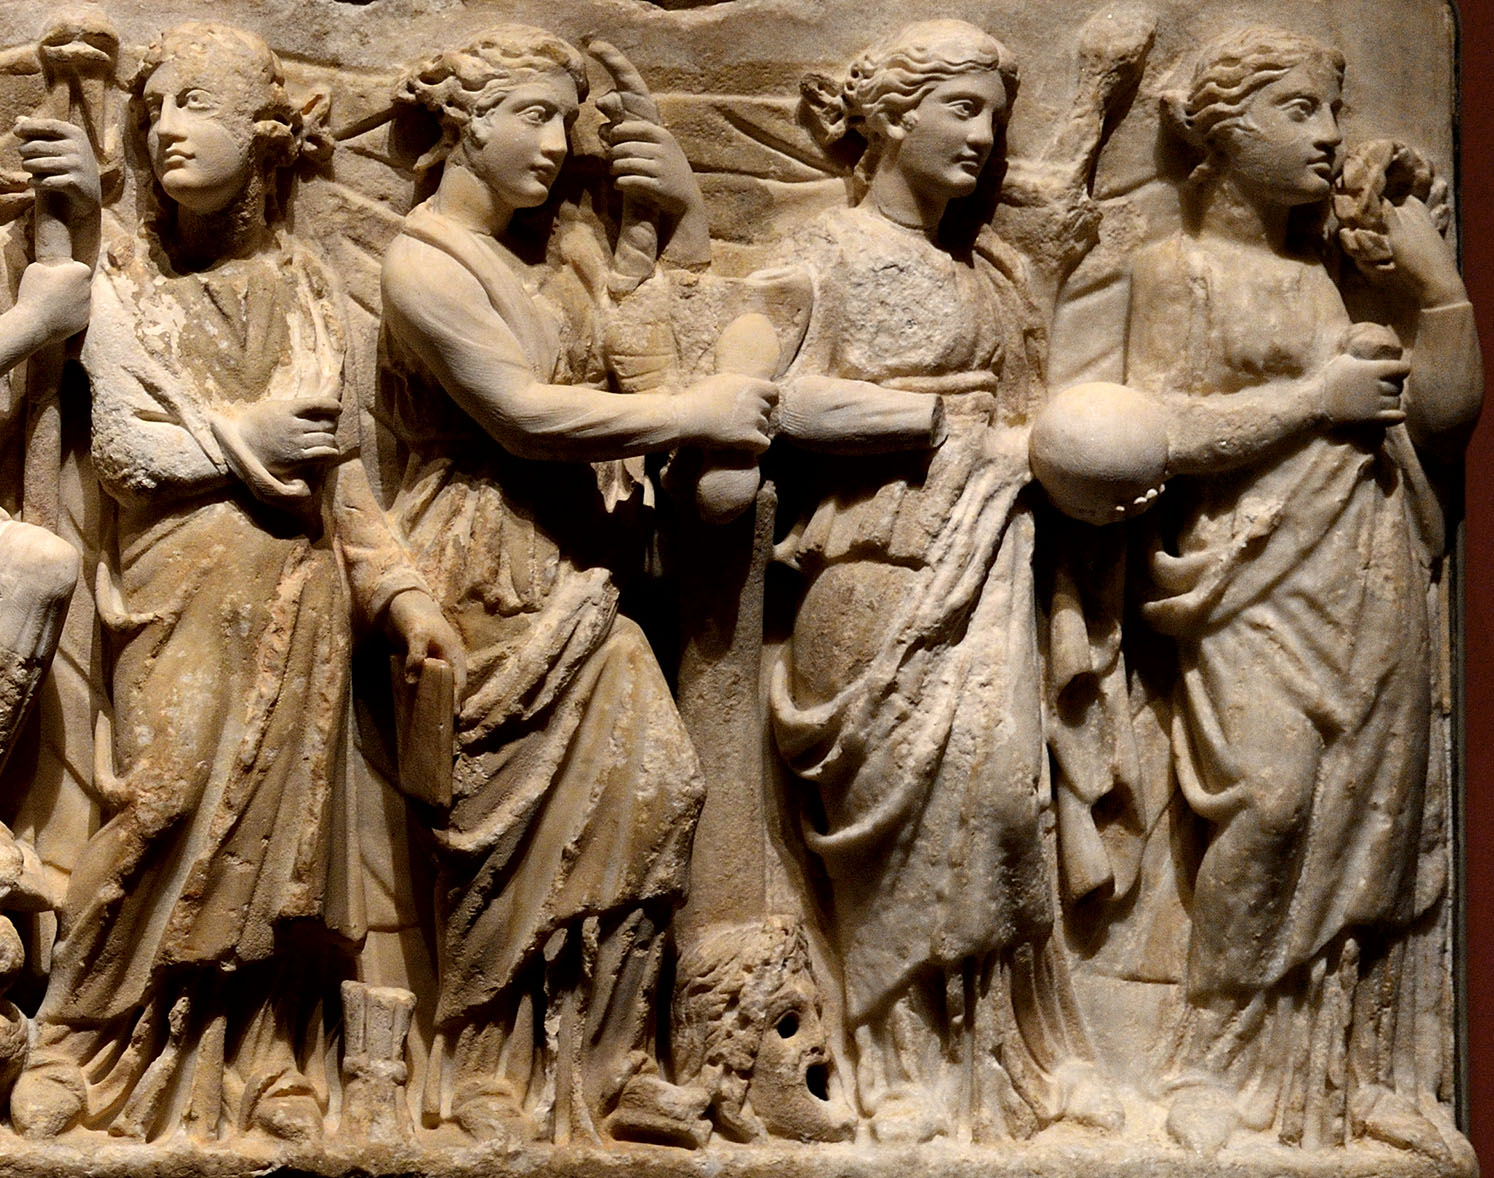 Nine Muses, Athena and Apollo. Detail: Calliope, Terpsichore, Urania, Clio. Relief of the front wall of a sarcophagus. Marble. 2nd cent. CE. Inv. No. A 185. Saint Petersburg, The State Hermitage Museum